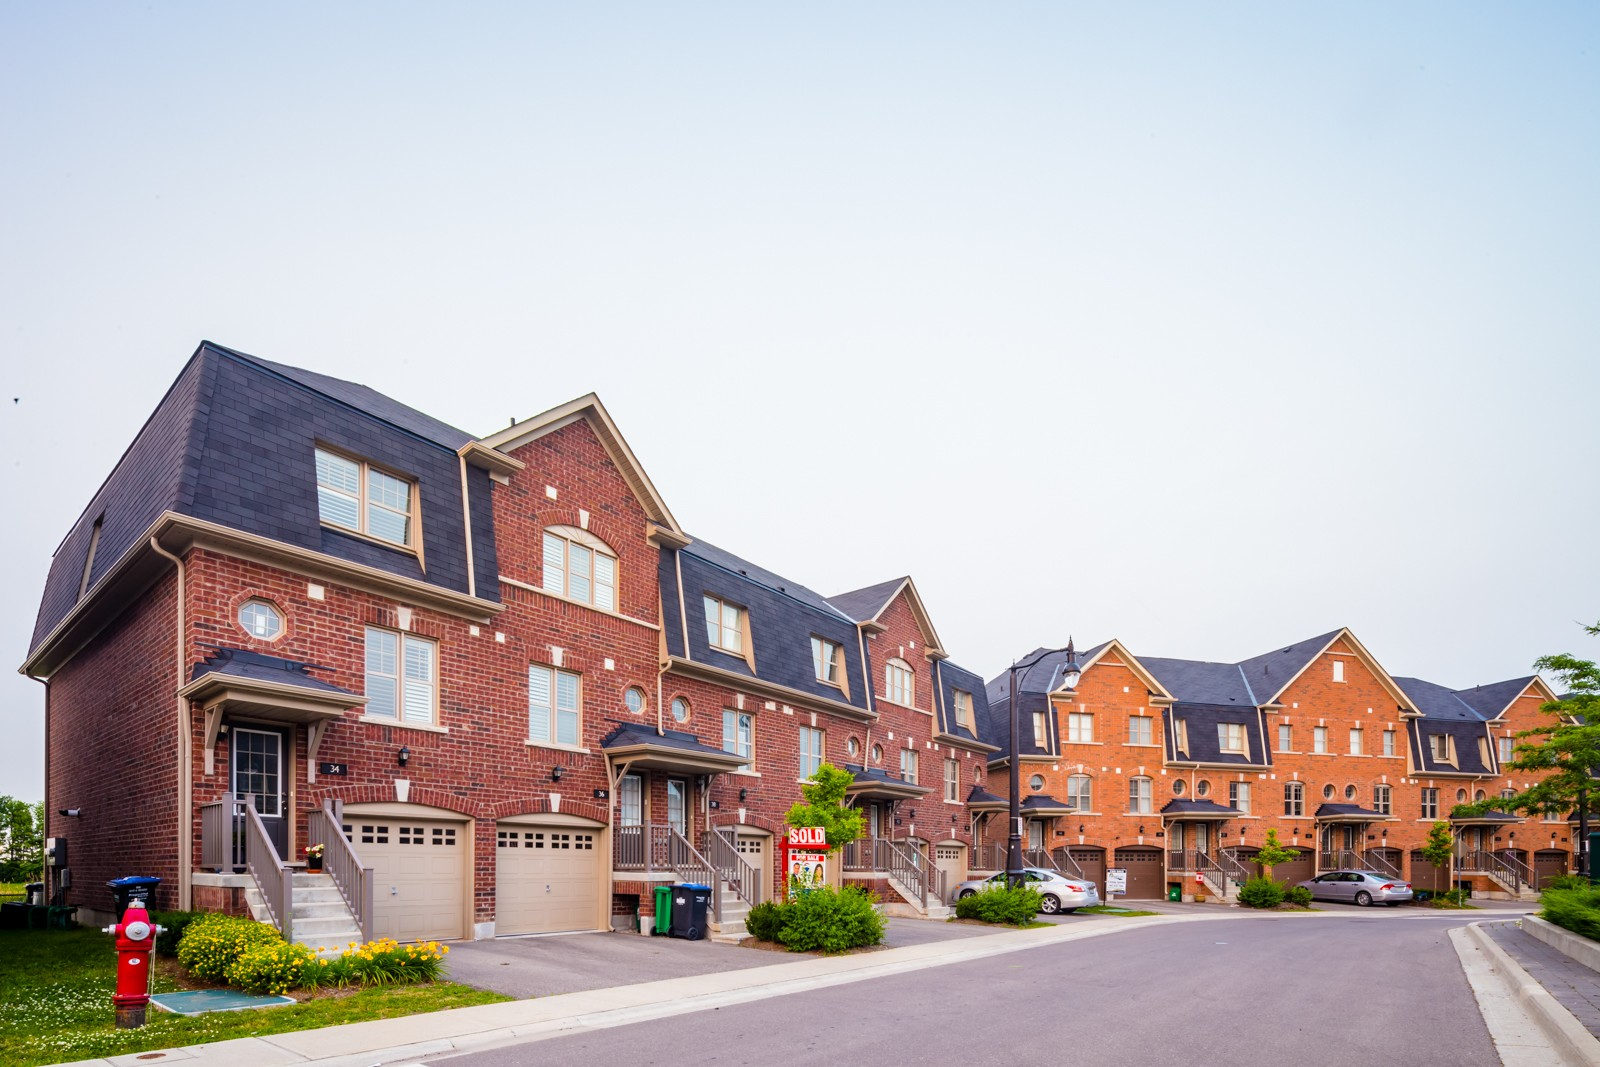 46 Soldier St Townhouses at 46 Soldier Street, Brampton 1